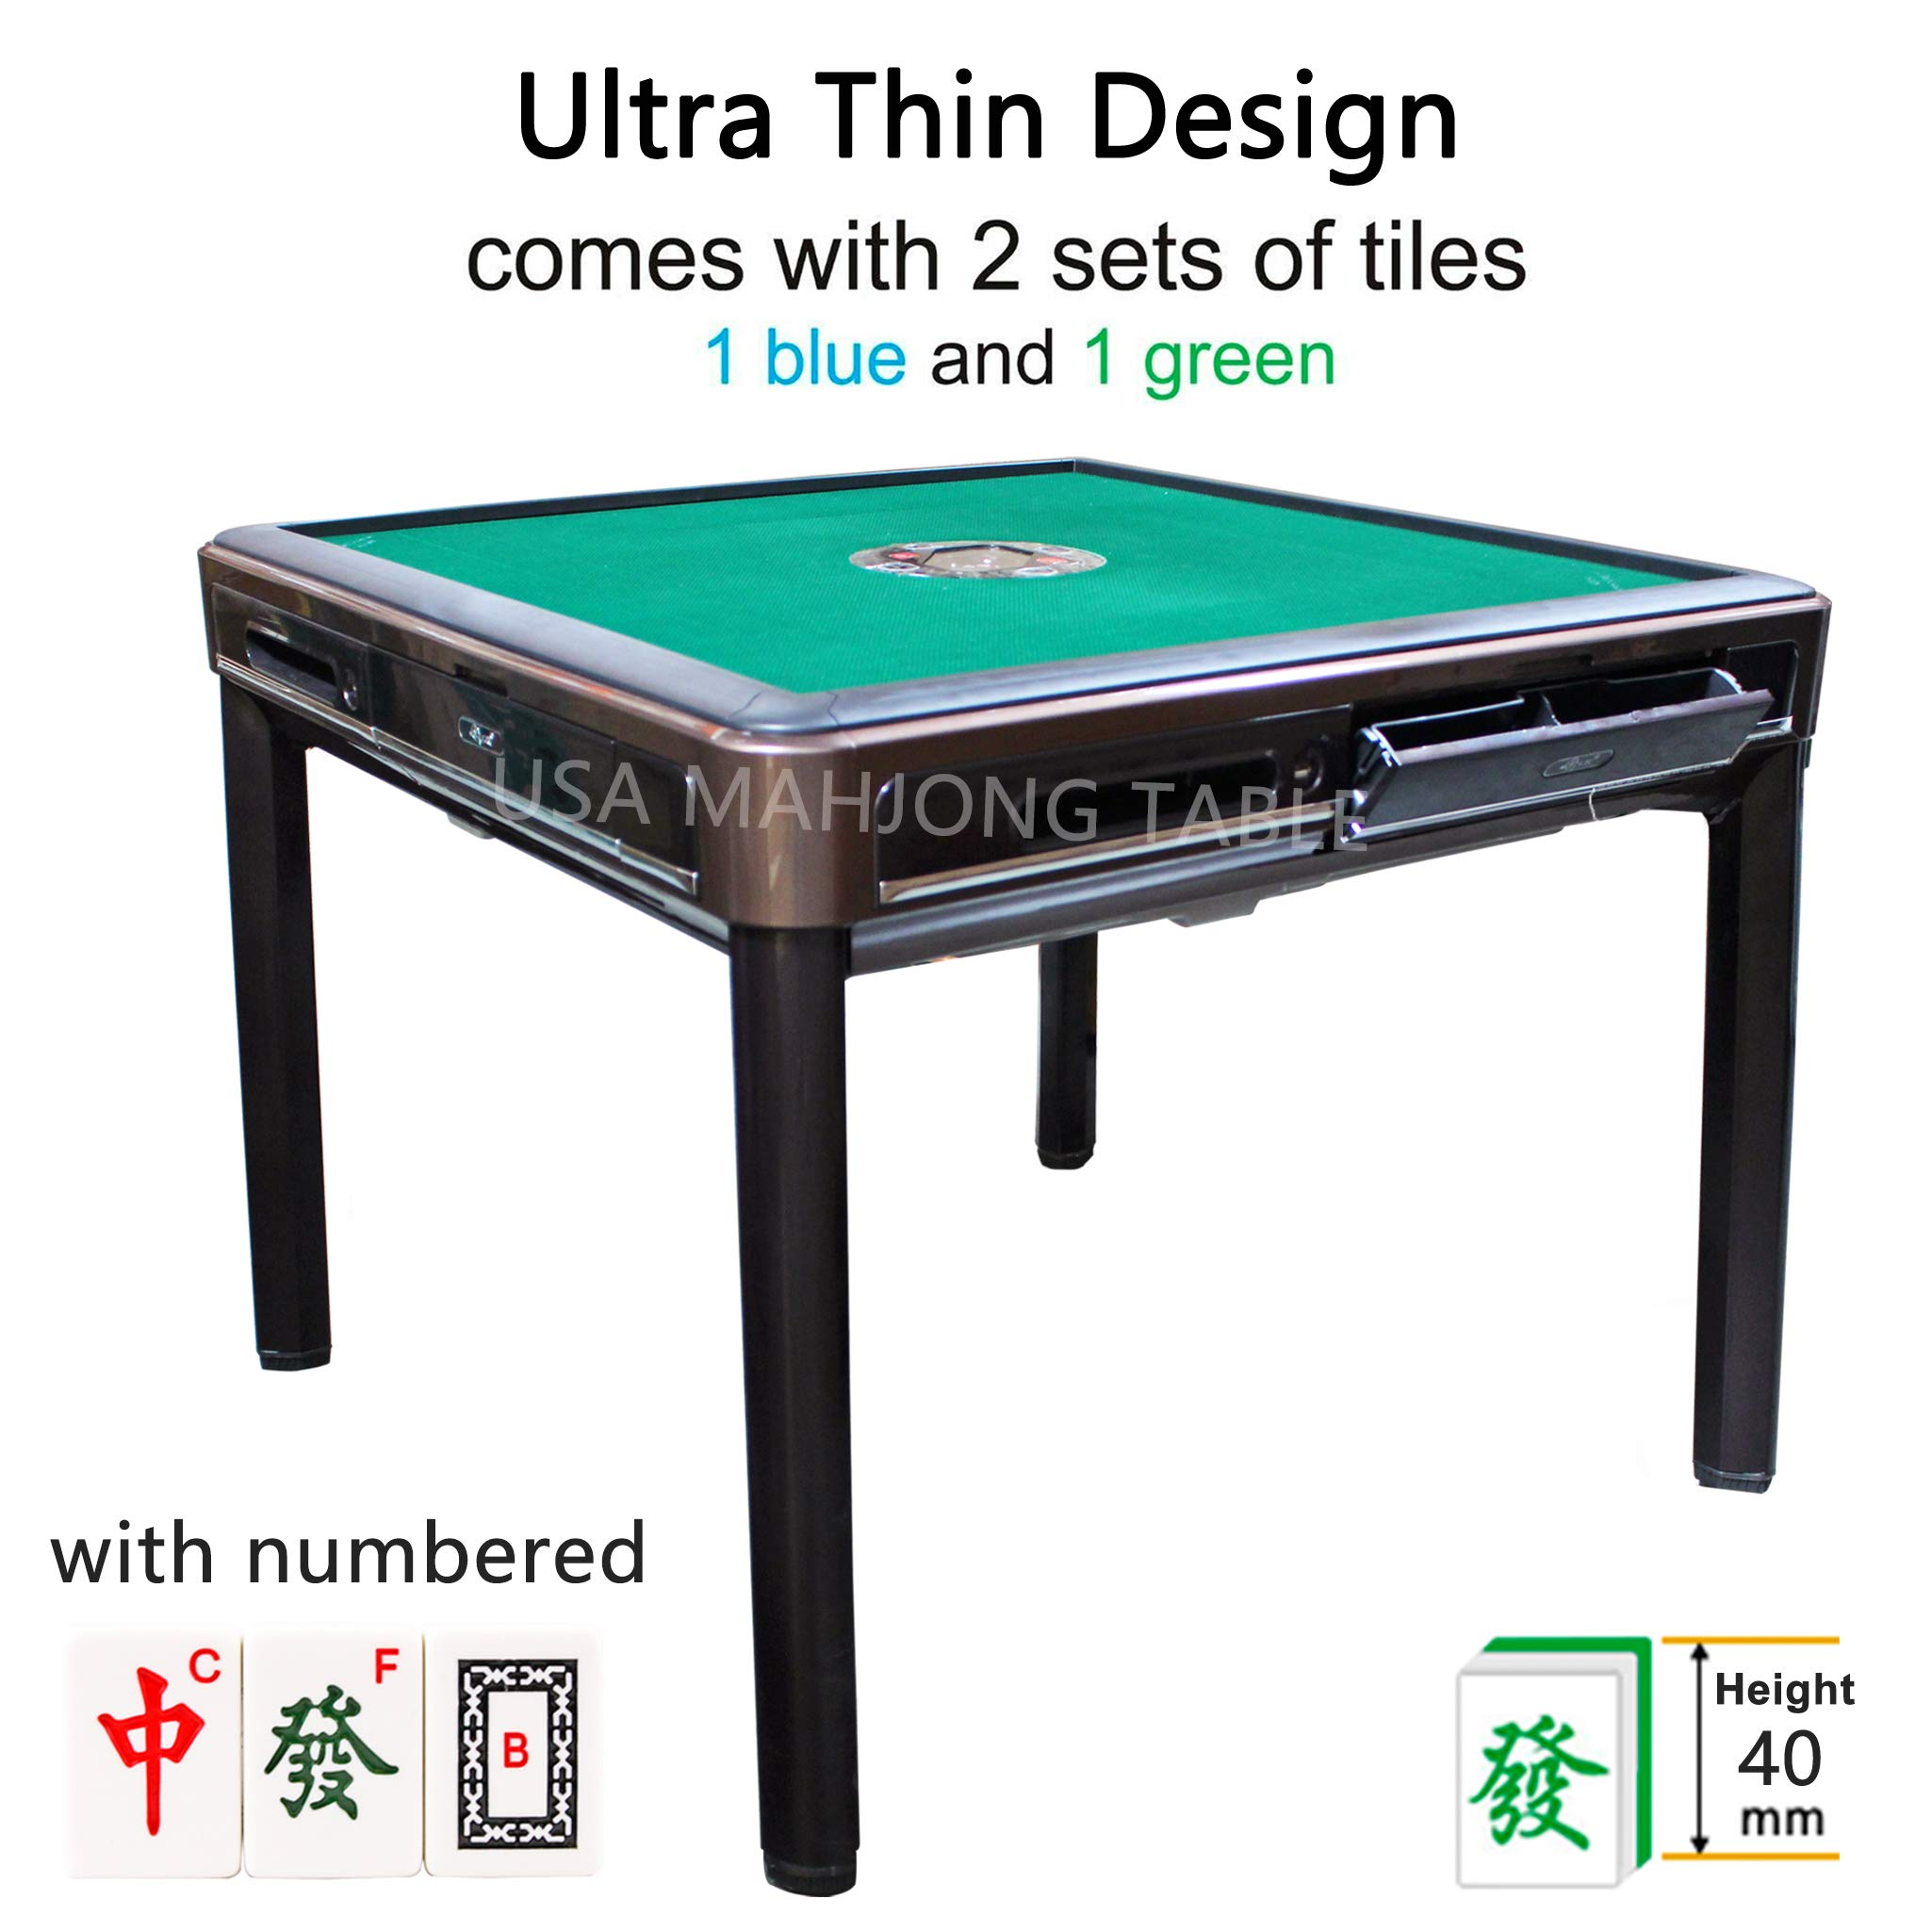 40mm Numbered Tiles 东方不败 Automatic Mahjong Table with 4 Legs Dining Table - Chinese Style, Philippine Style, Comes 2 Sets of Tiles (Blue & Green) & Table Cover (40mm Numbered Tiles) by usamahjongtable